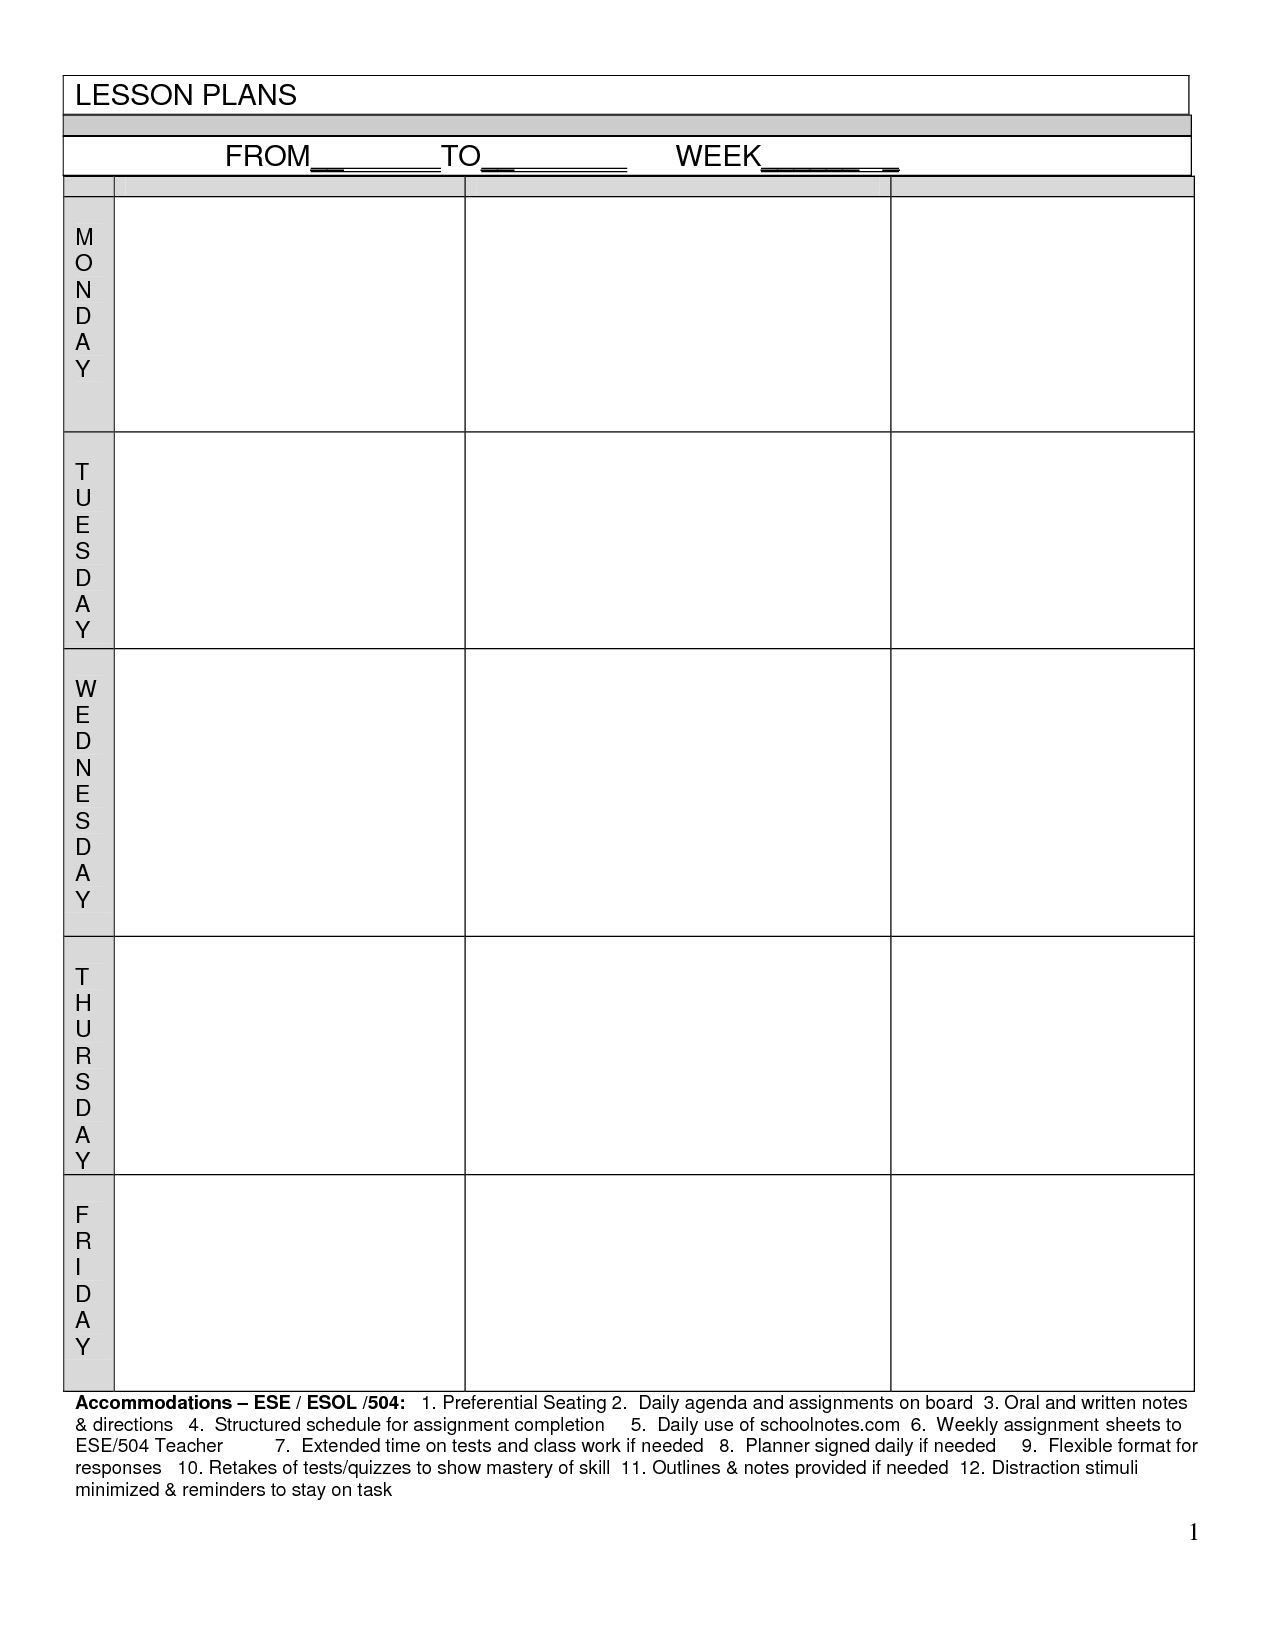 Blank Lesson Plans For Teachers